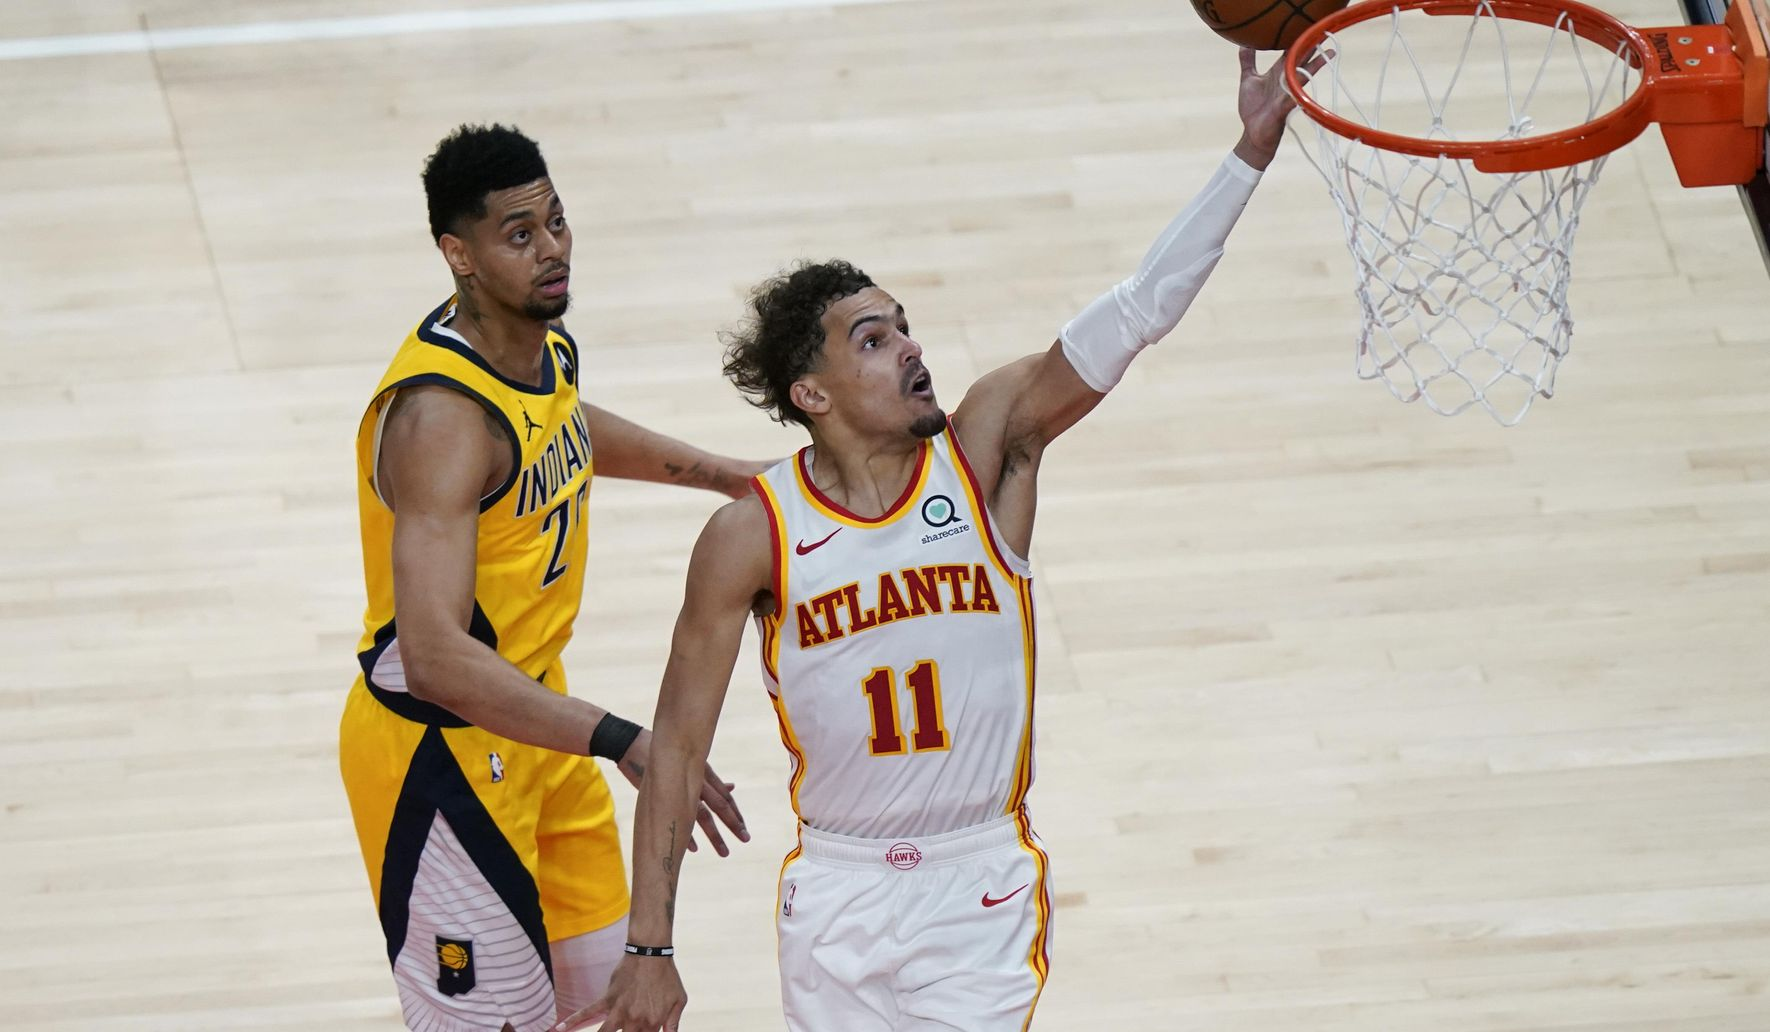 Pacers_hawks_basketball_10190_c0-201-4221-2662_s1770x1032